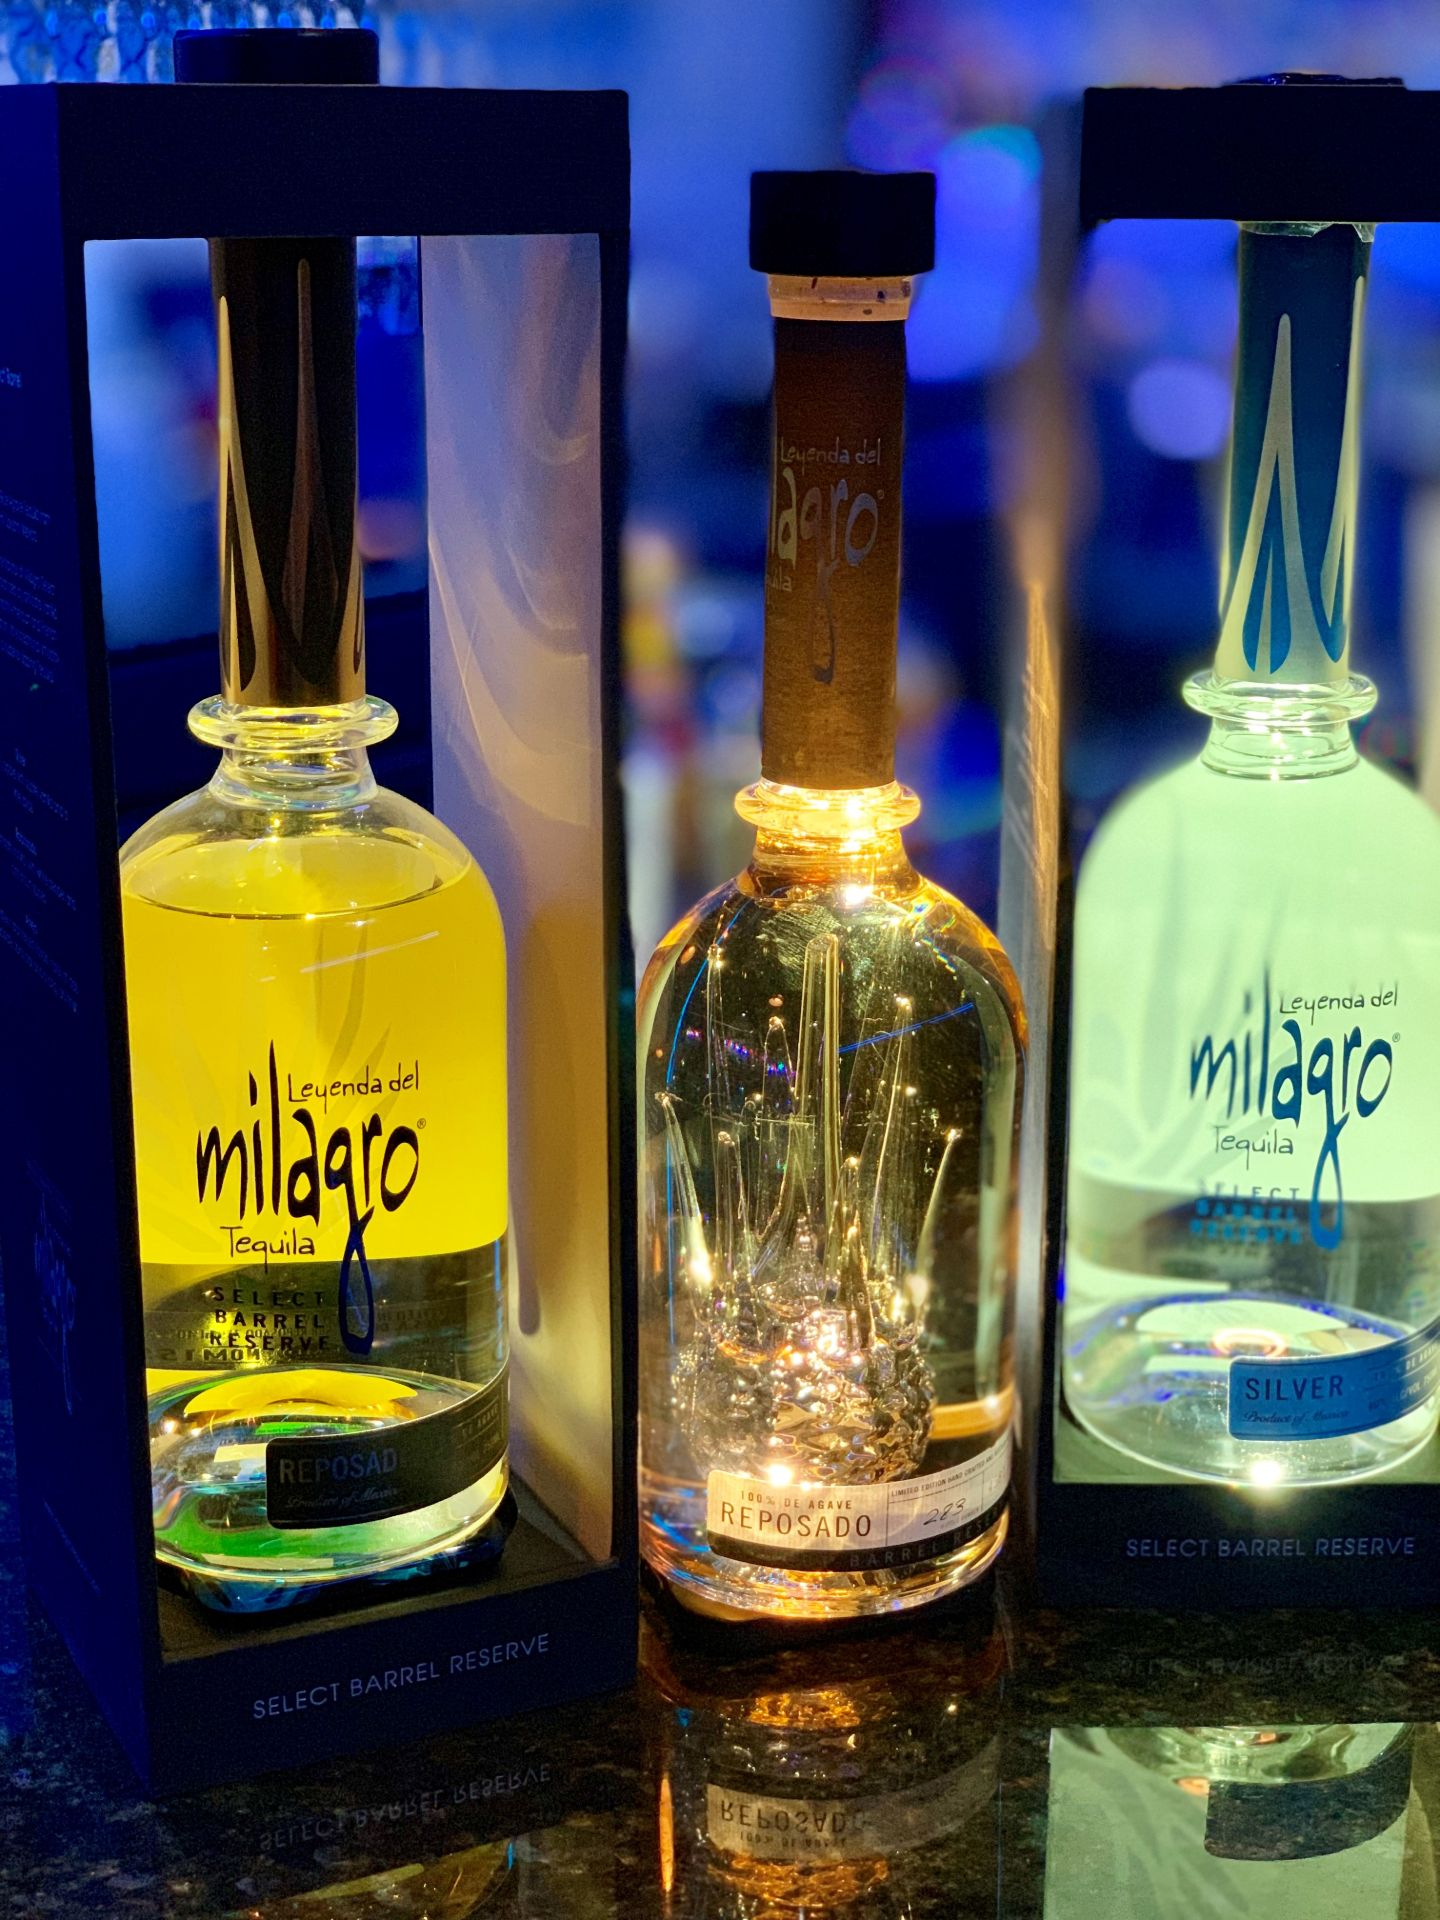 Three bottles of Milagro illuminated on a bar-top